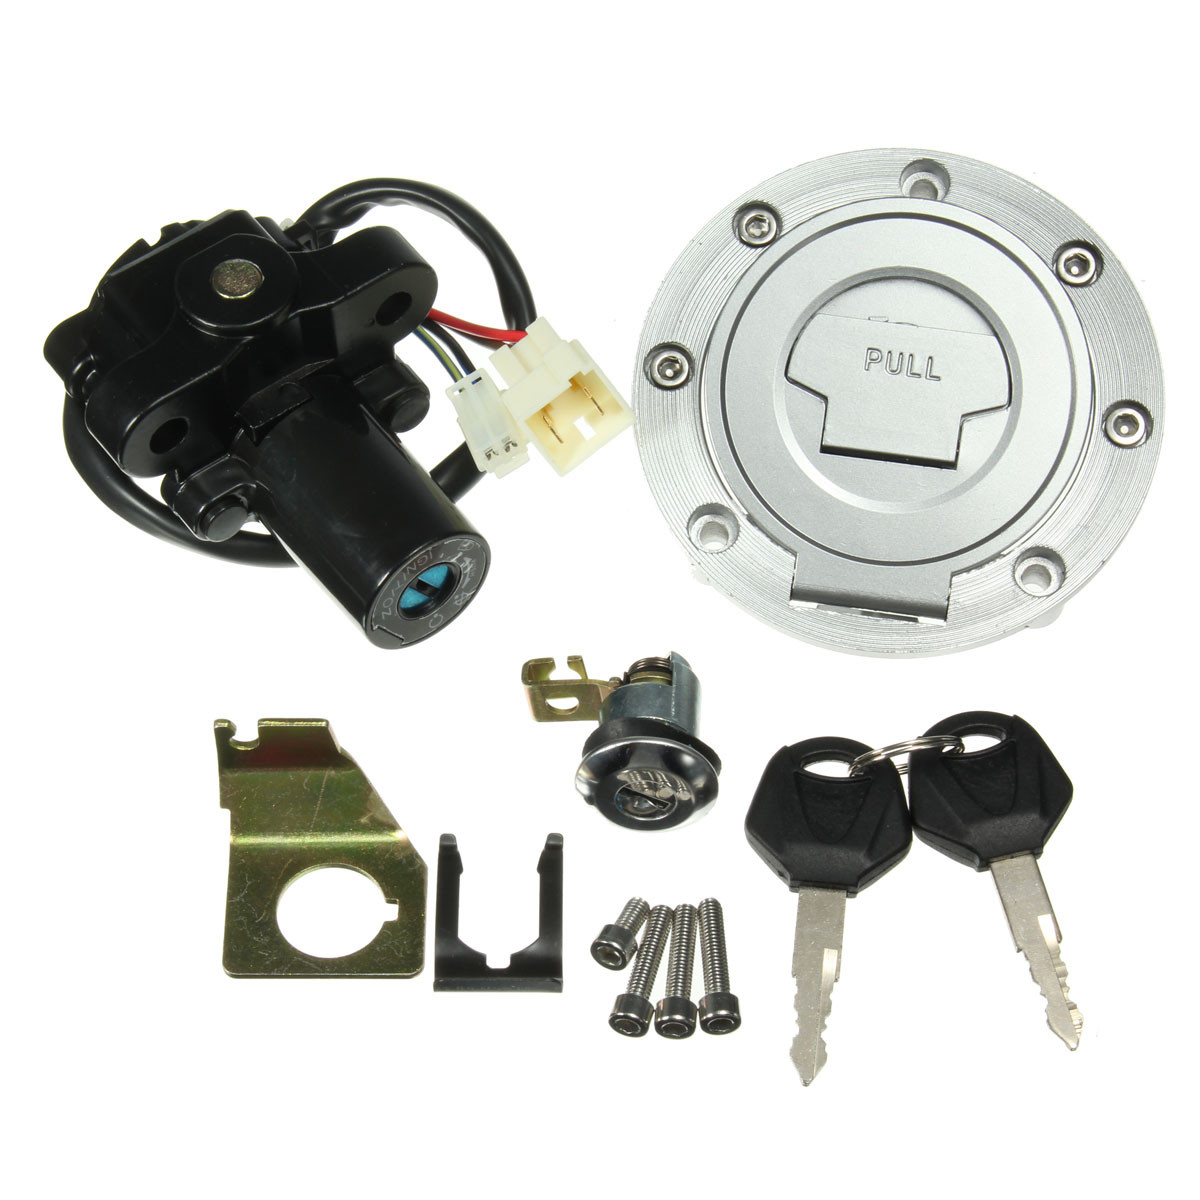 Fuel Gas Cap Ignition Switch Seat Lock With Key Kit For Yamaha YZF R1 R6 2001 2002 2003 2004 2005 2006 2007 2008 2009 2010 2011